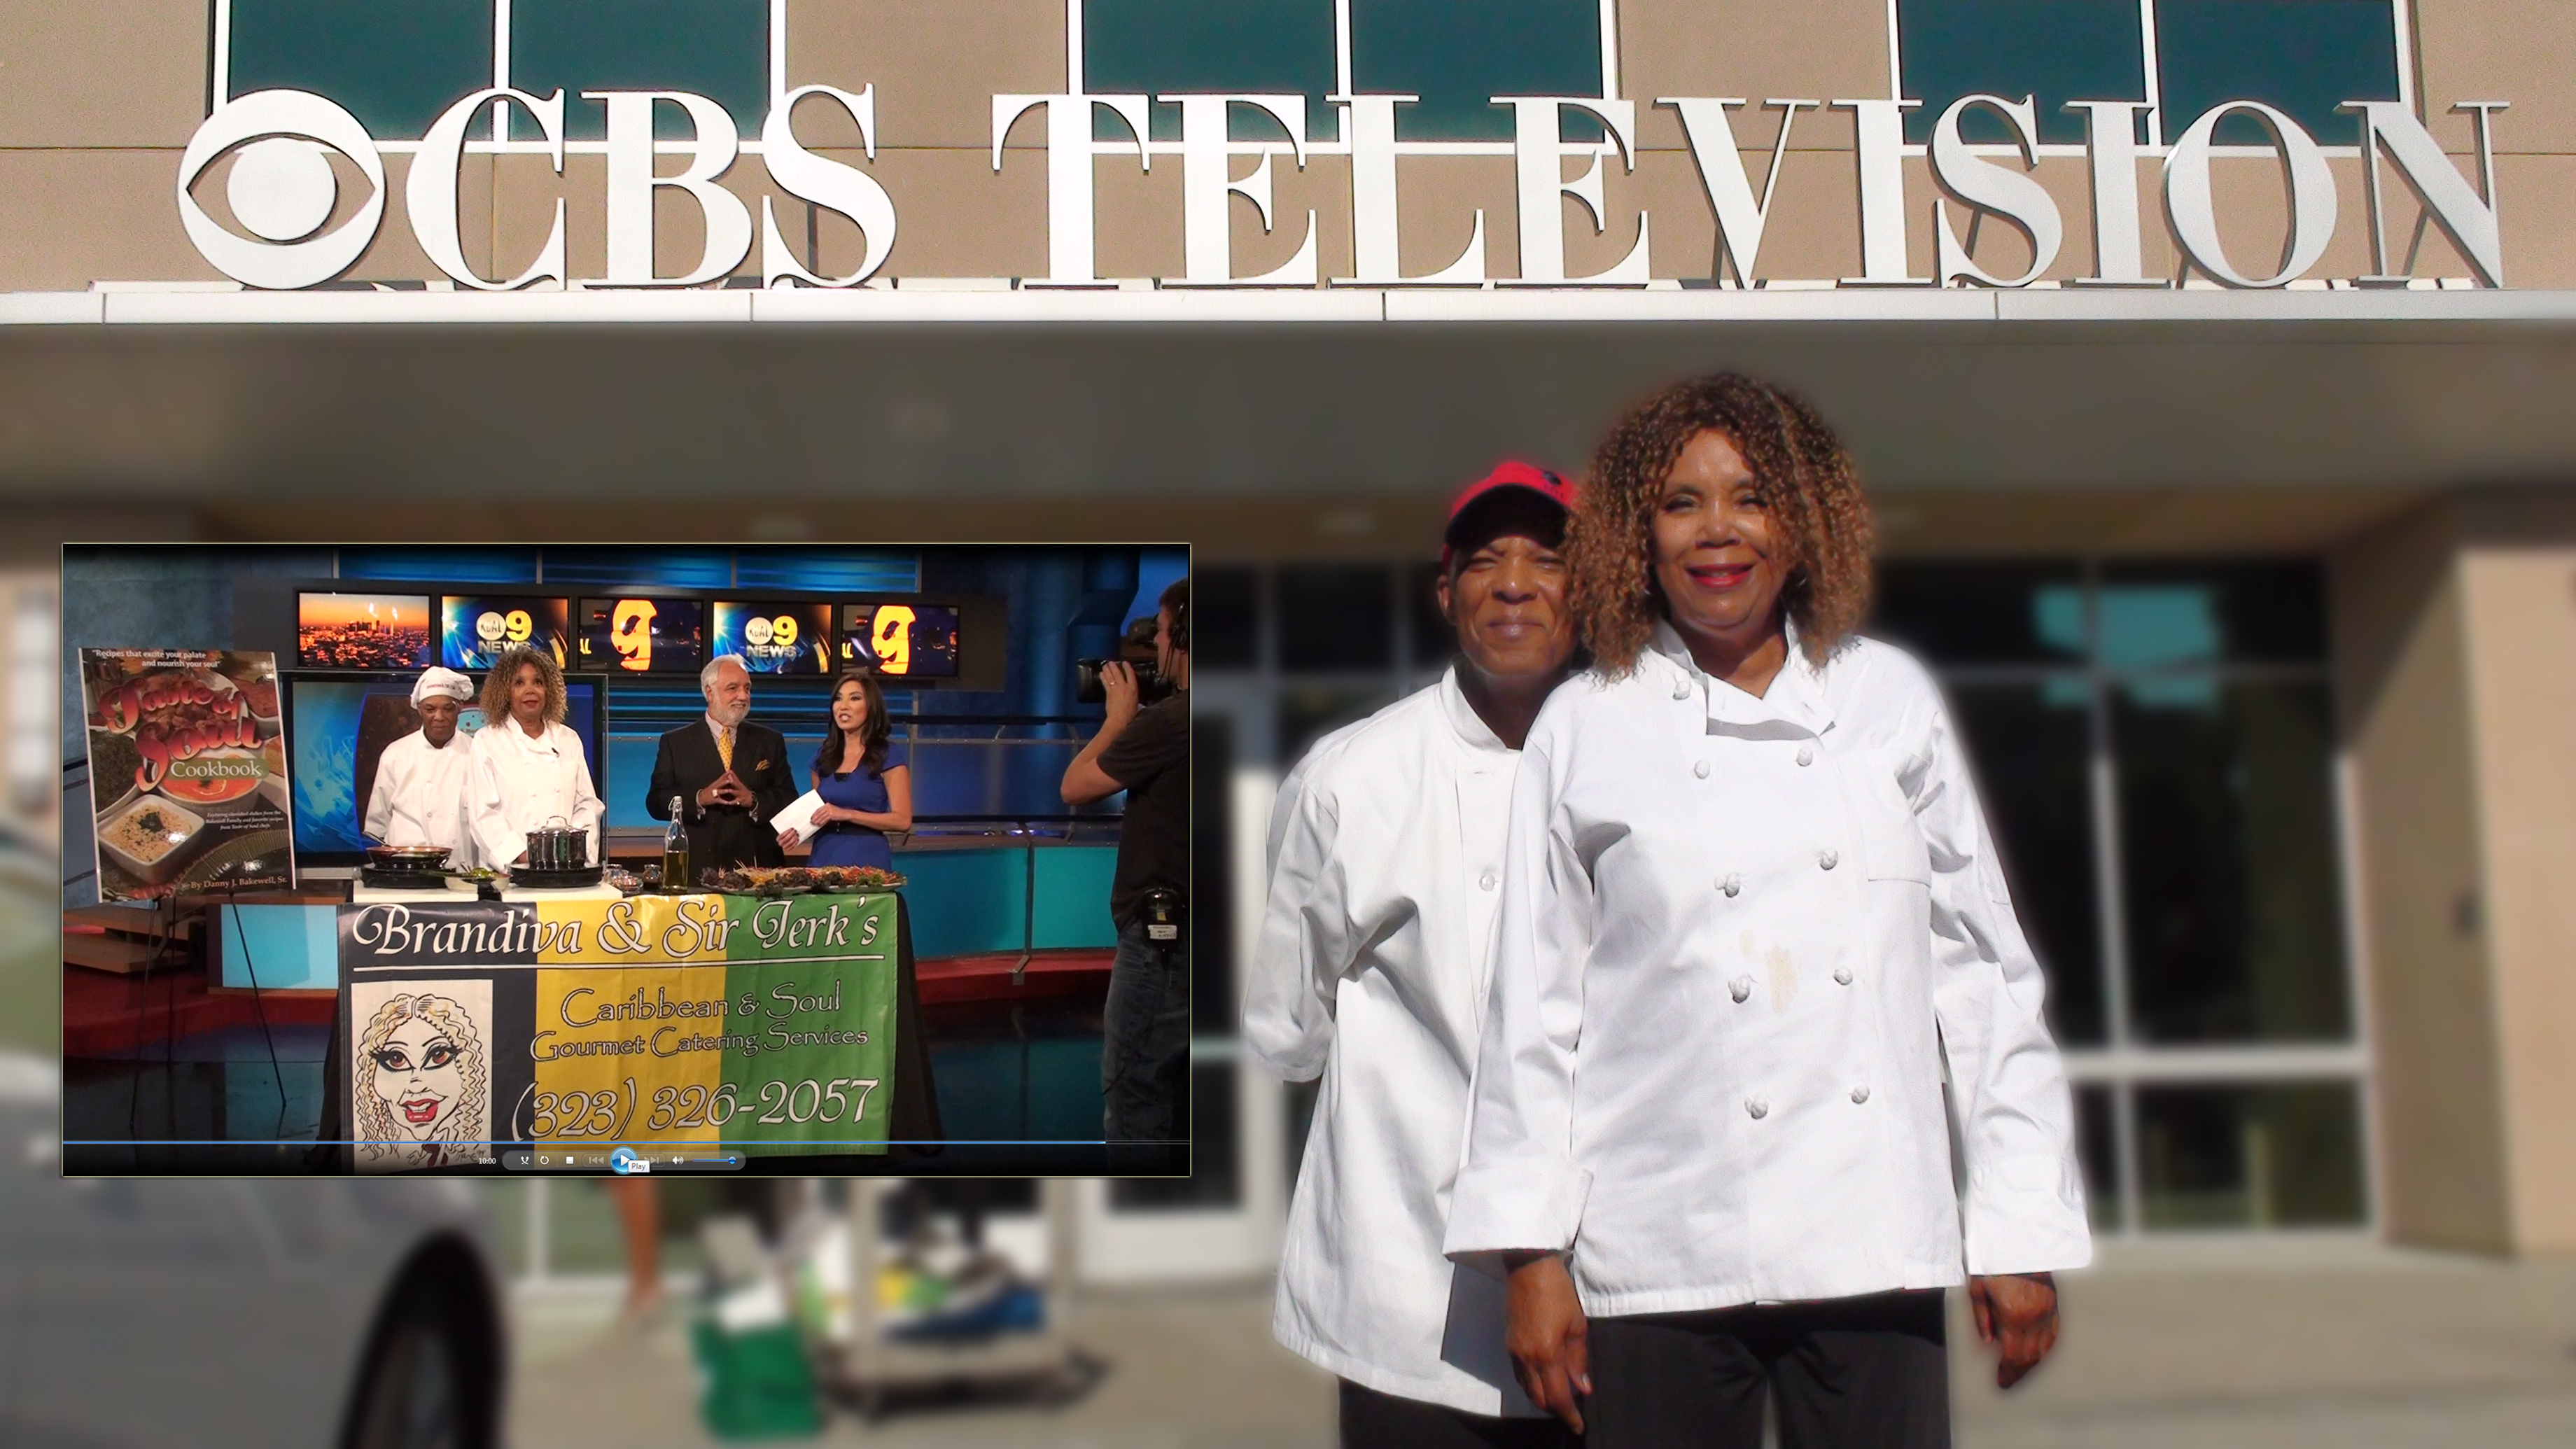 Brandiva And Sir Jerks Caribbean Soul Food Catering on CBS